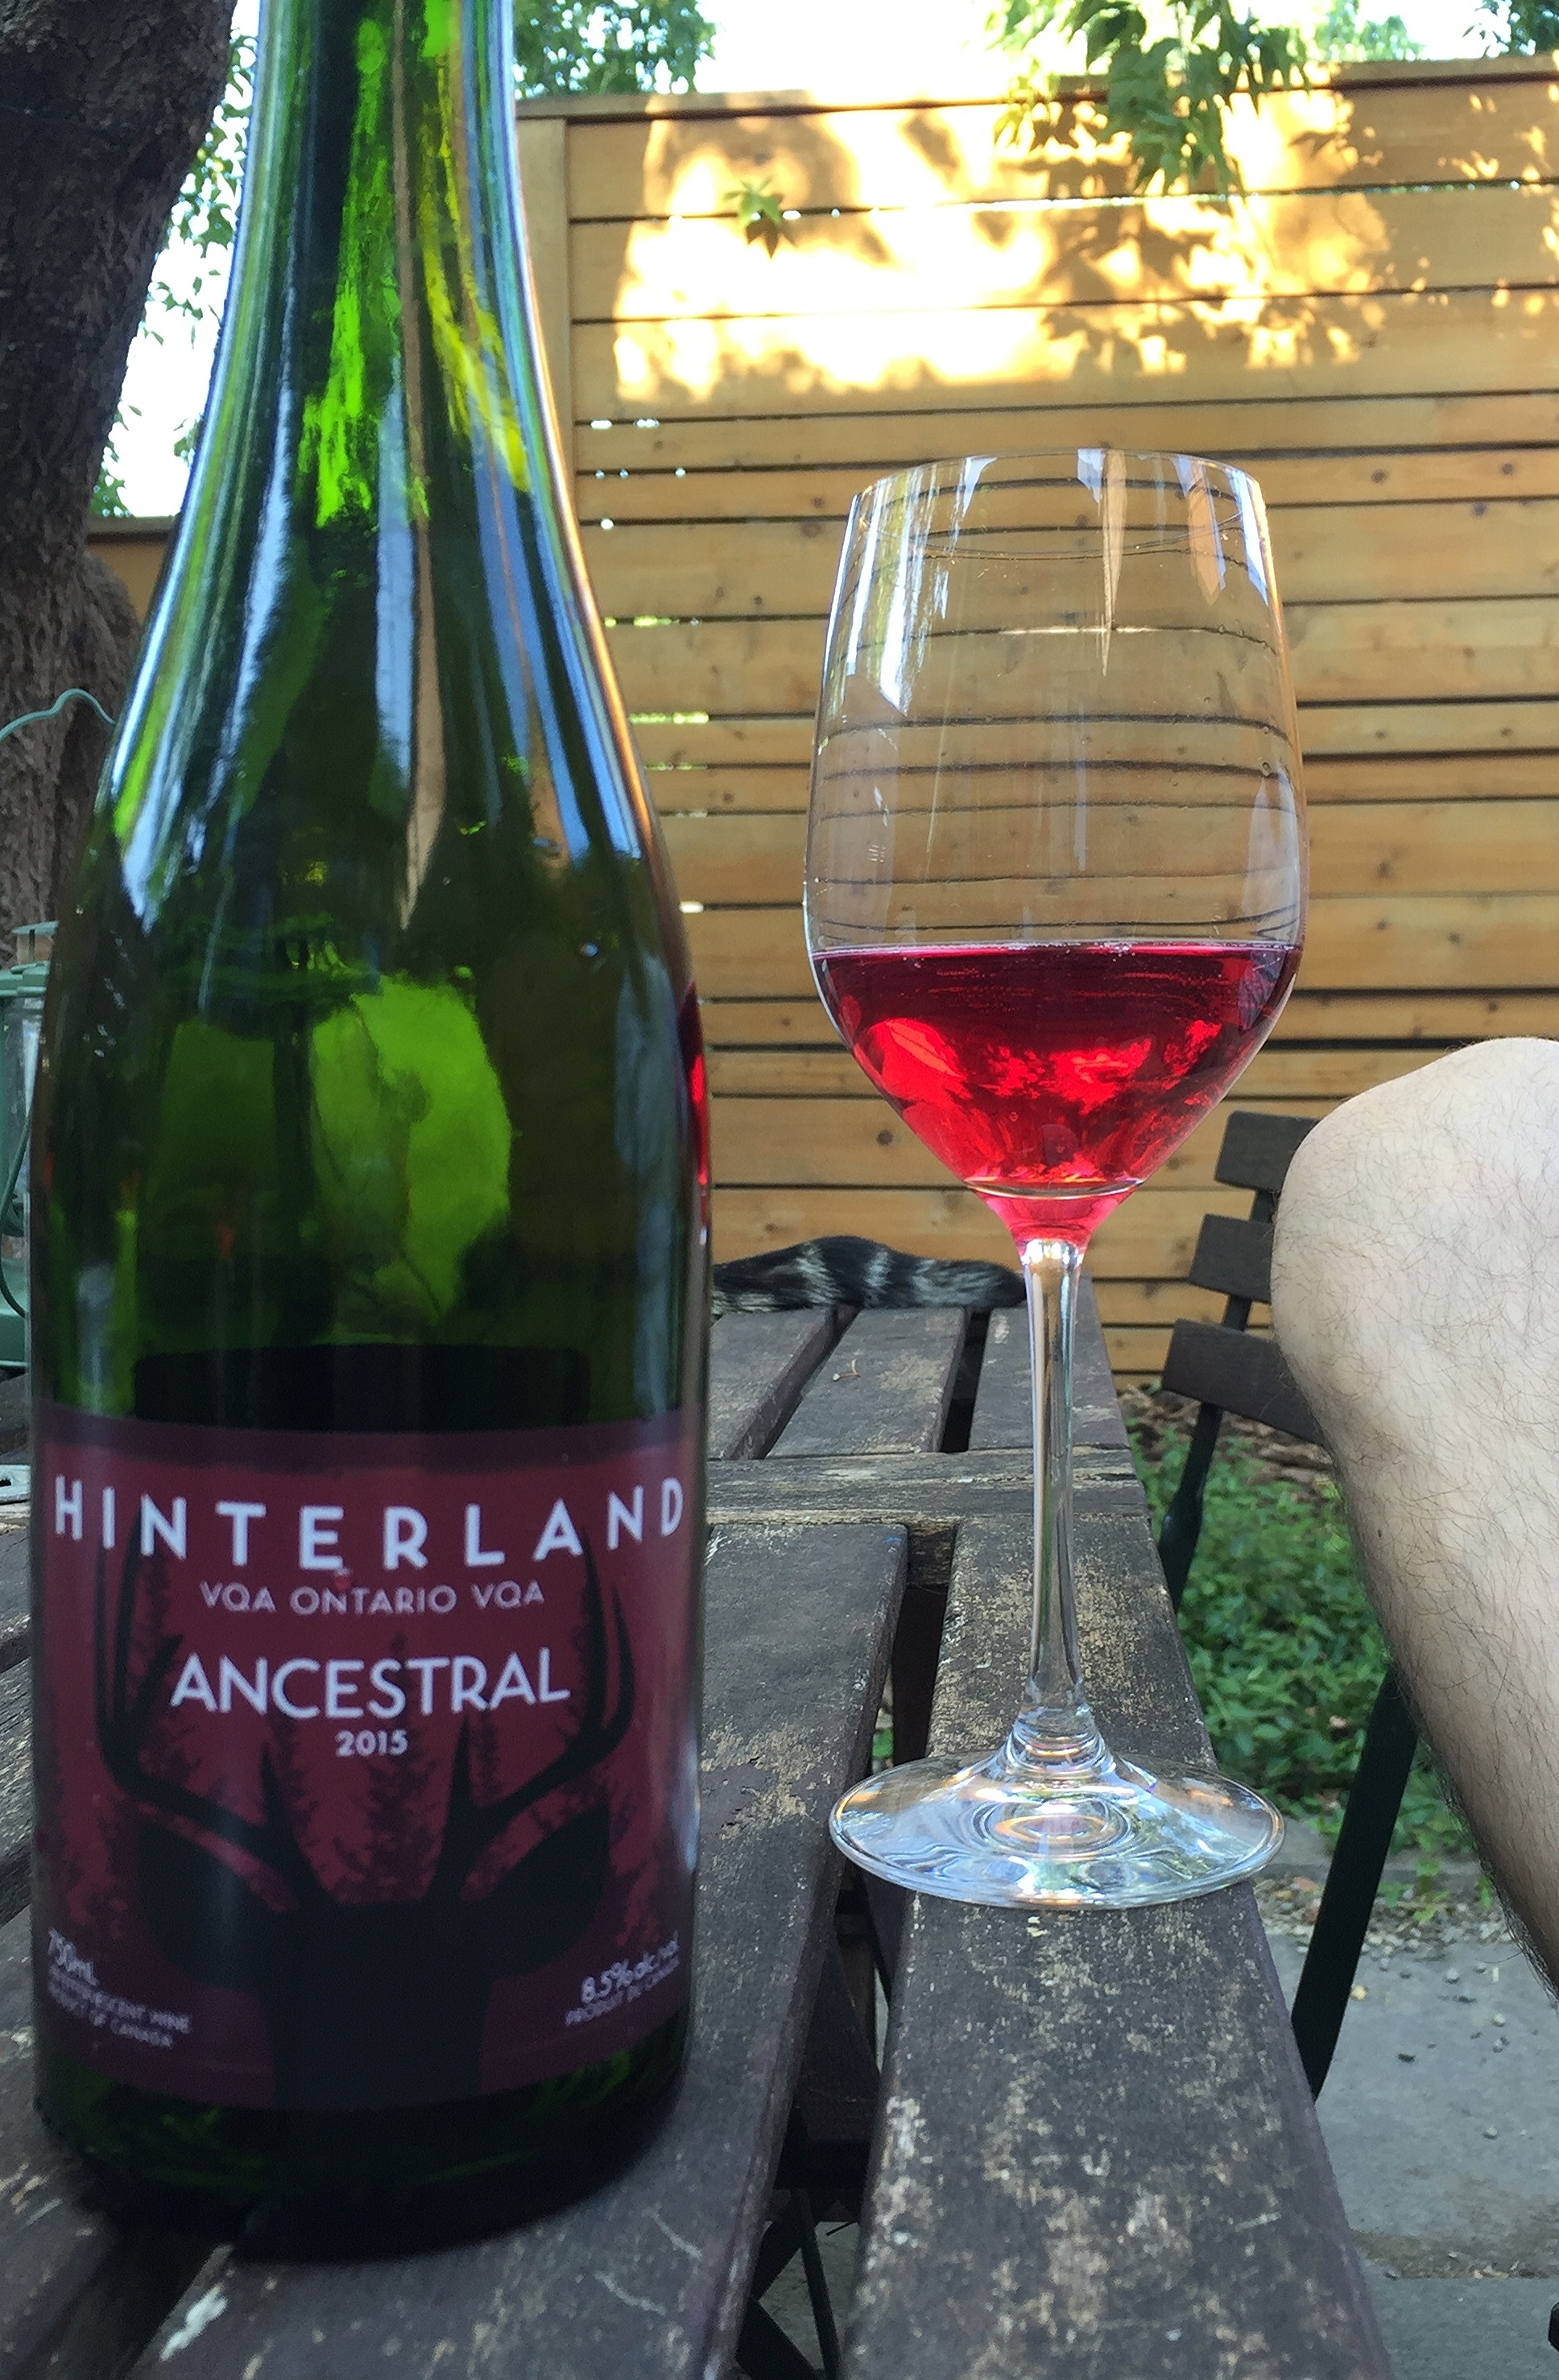 Hinterland Ancestral 2015 review